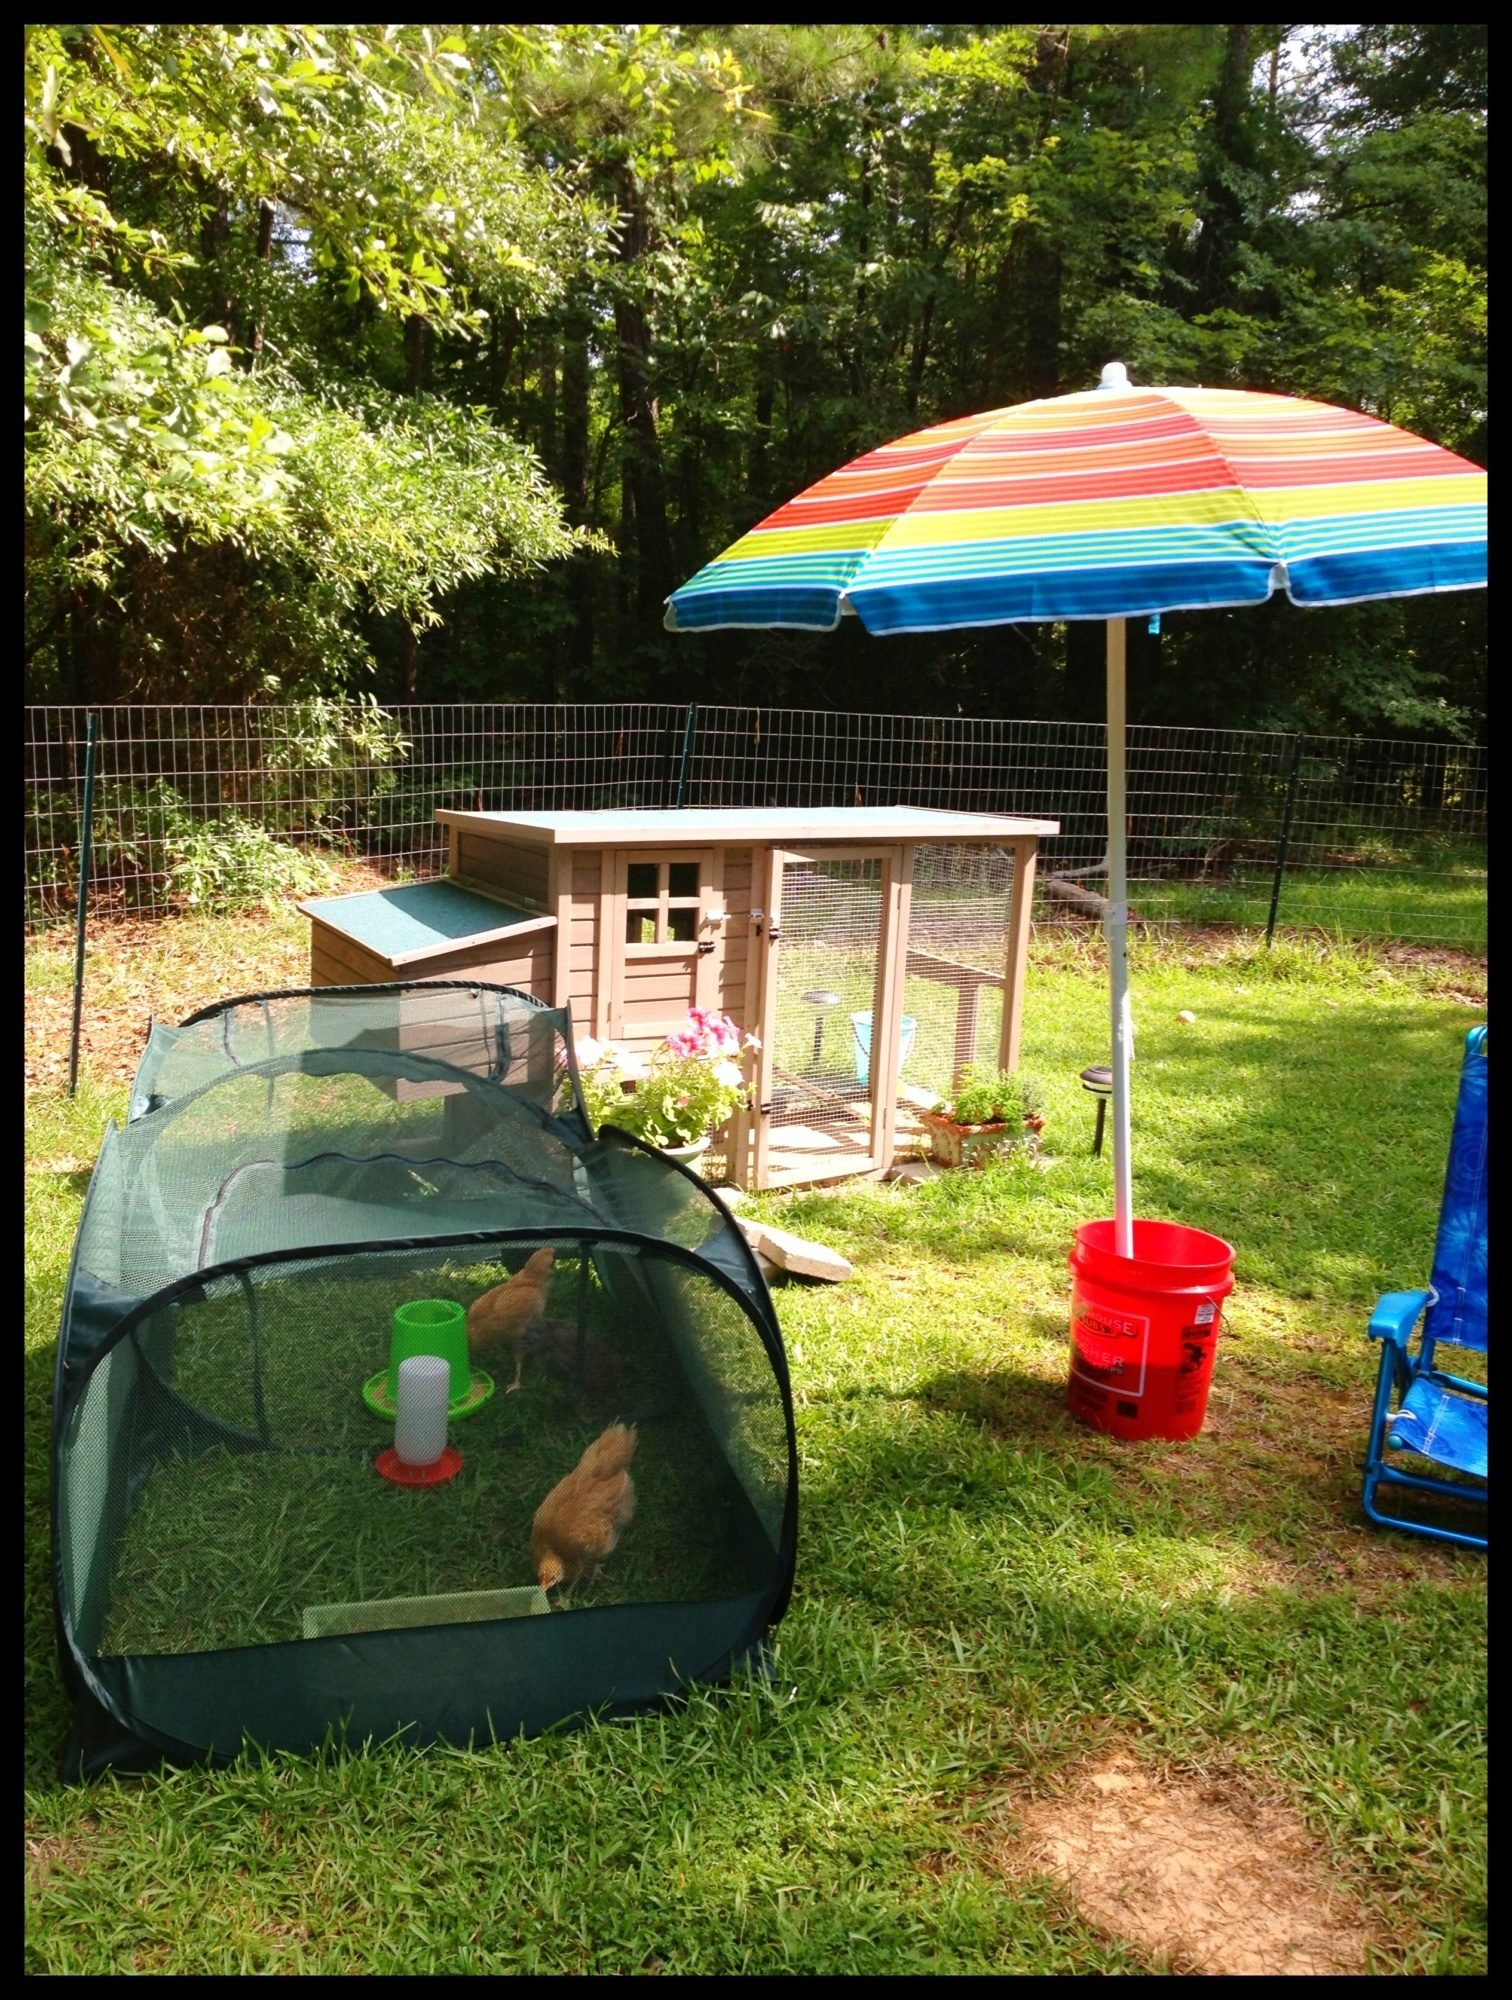 peck and play tent backyard chickens